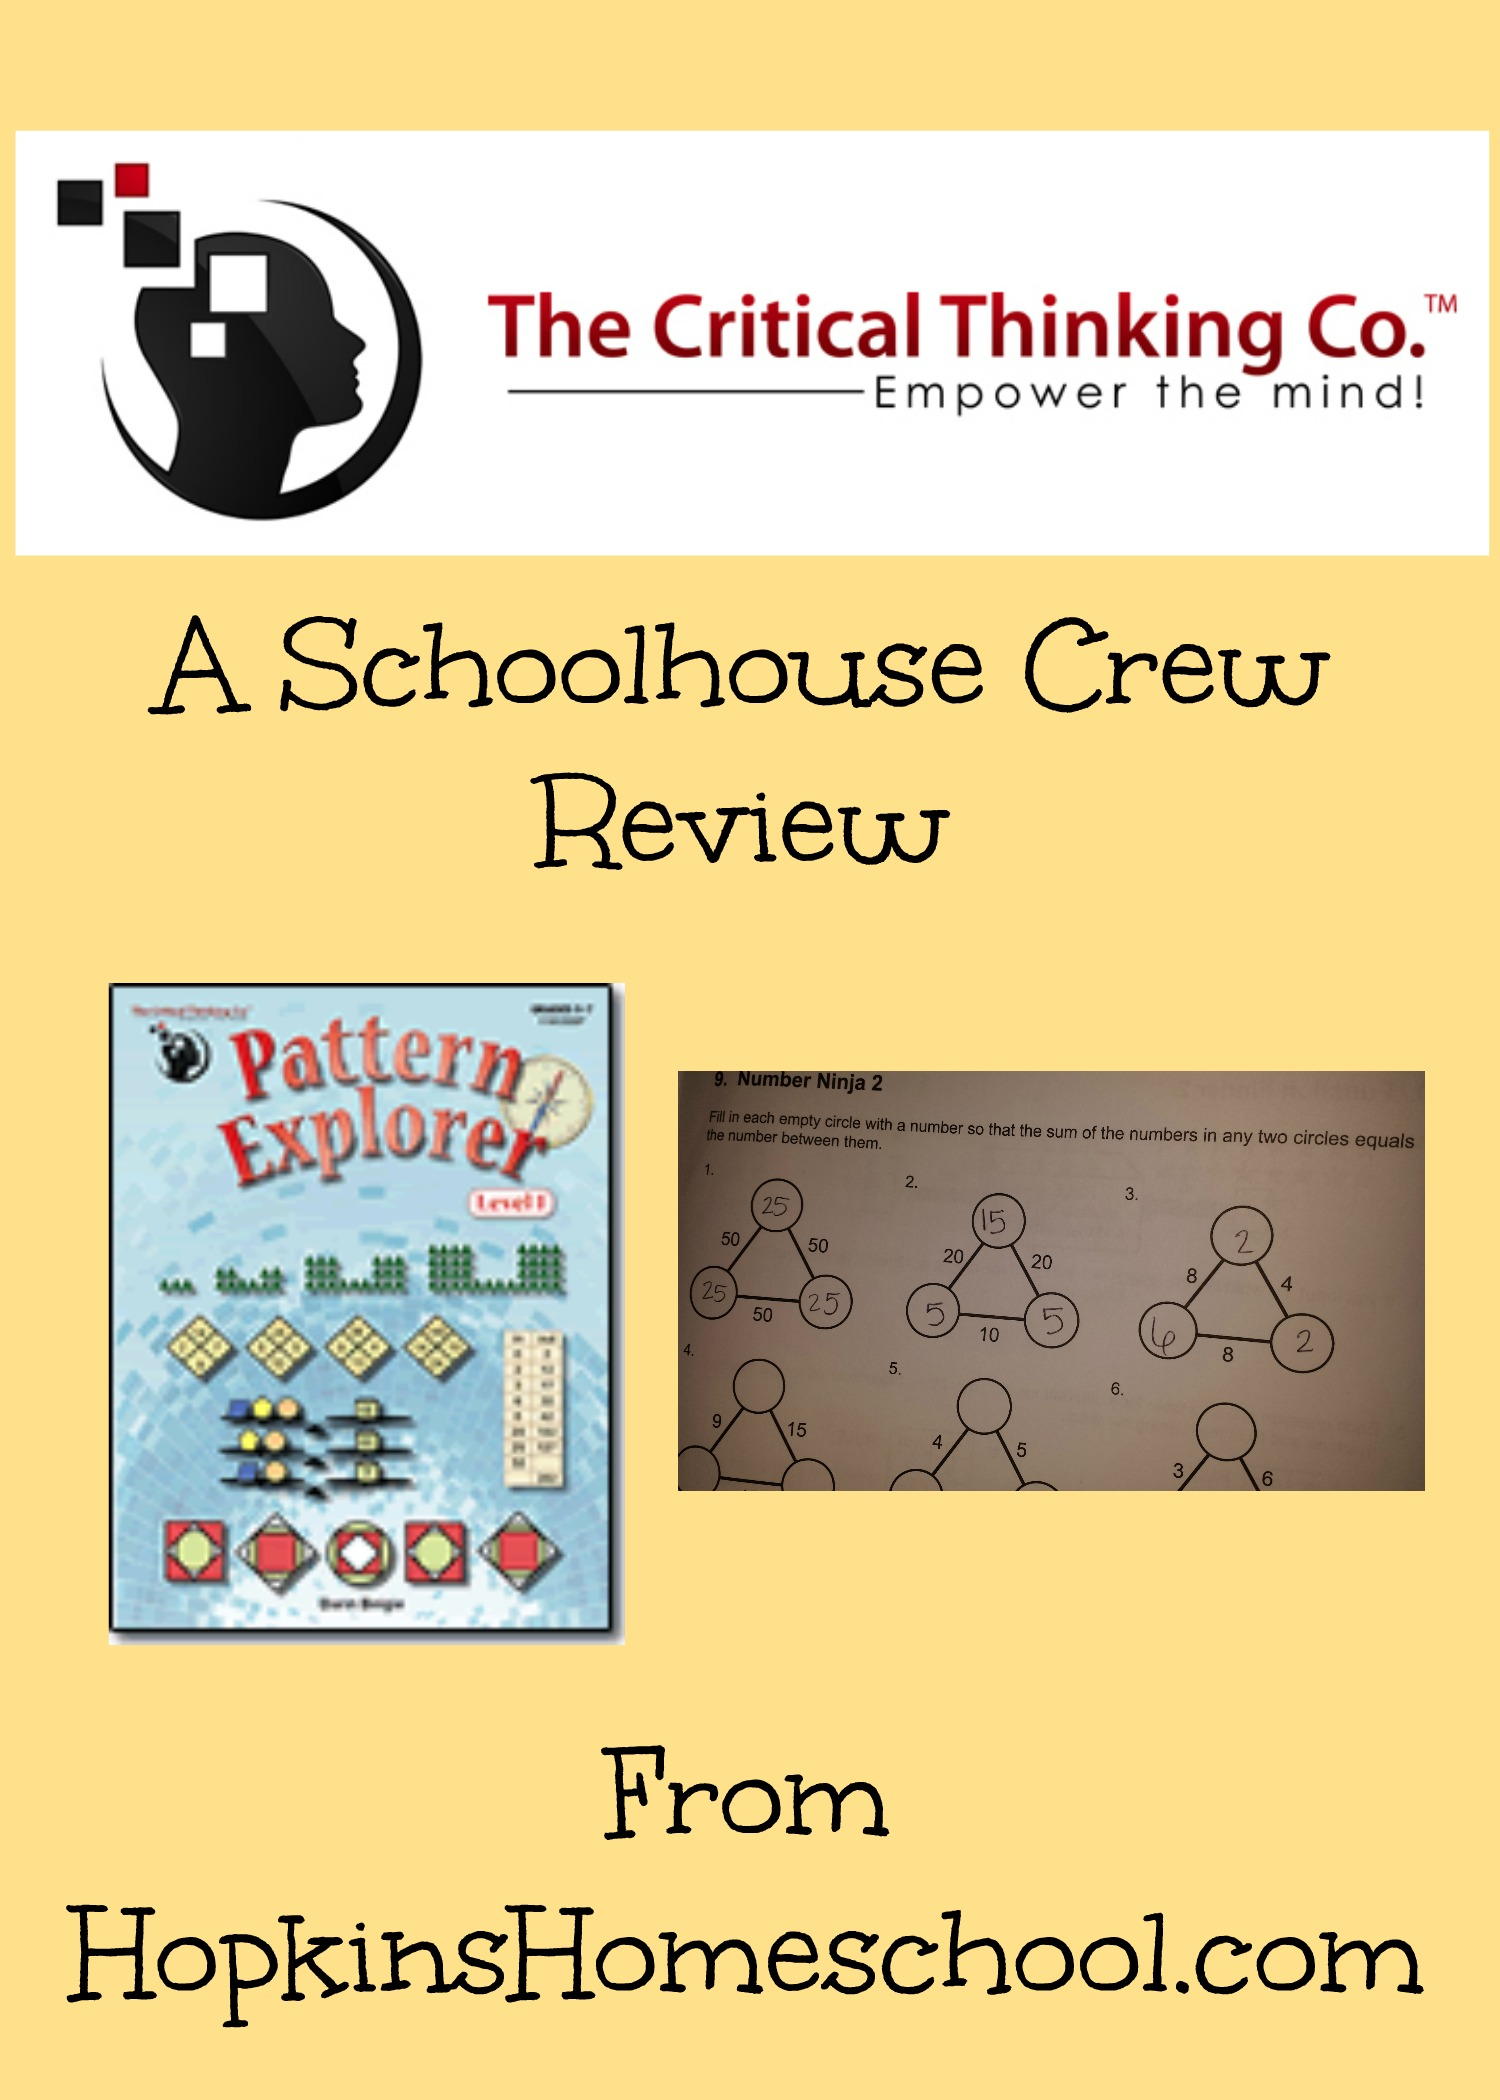 by The Critical Thinking Co. Paperback. $ $ 7 99 Prime. FREE Shipping on eligible orders. More Buying Choices. $ (38 used & new offers) 5 out of 5 stars 2. The Critical Thinking Mind Benders Book 5 School Workbook May 23, by Anita Harnadek. Paperback. $ $ 10 99 Prime.